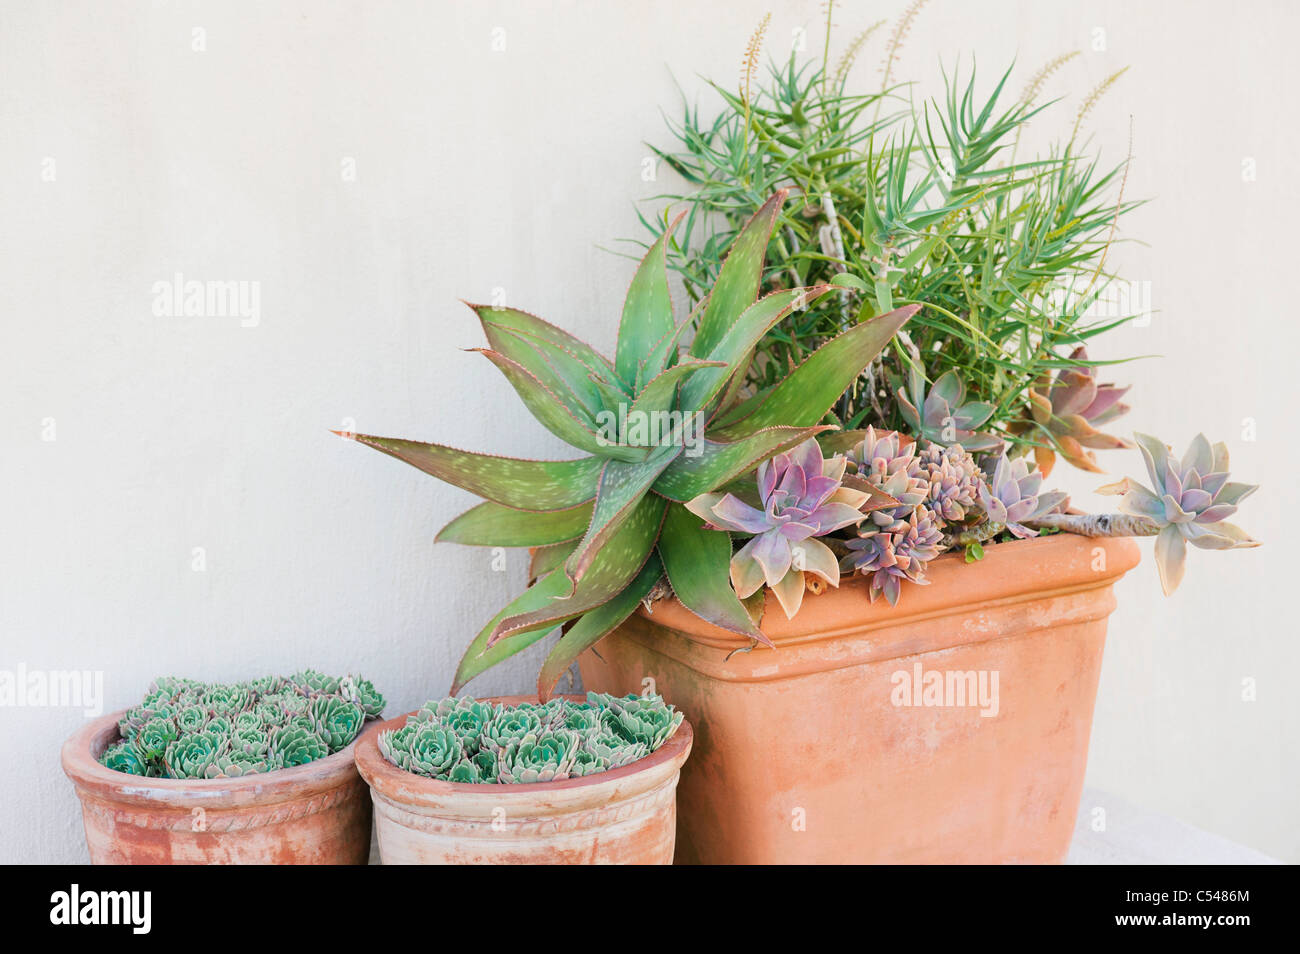 Close-up of potted plants - Stock Image